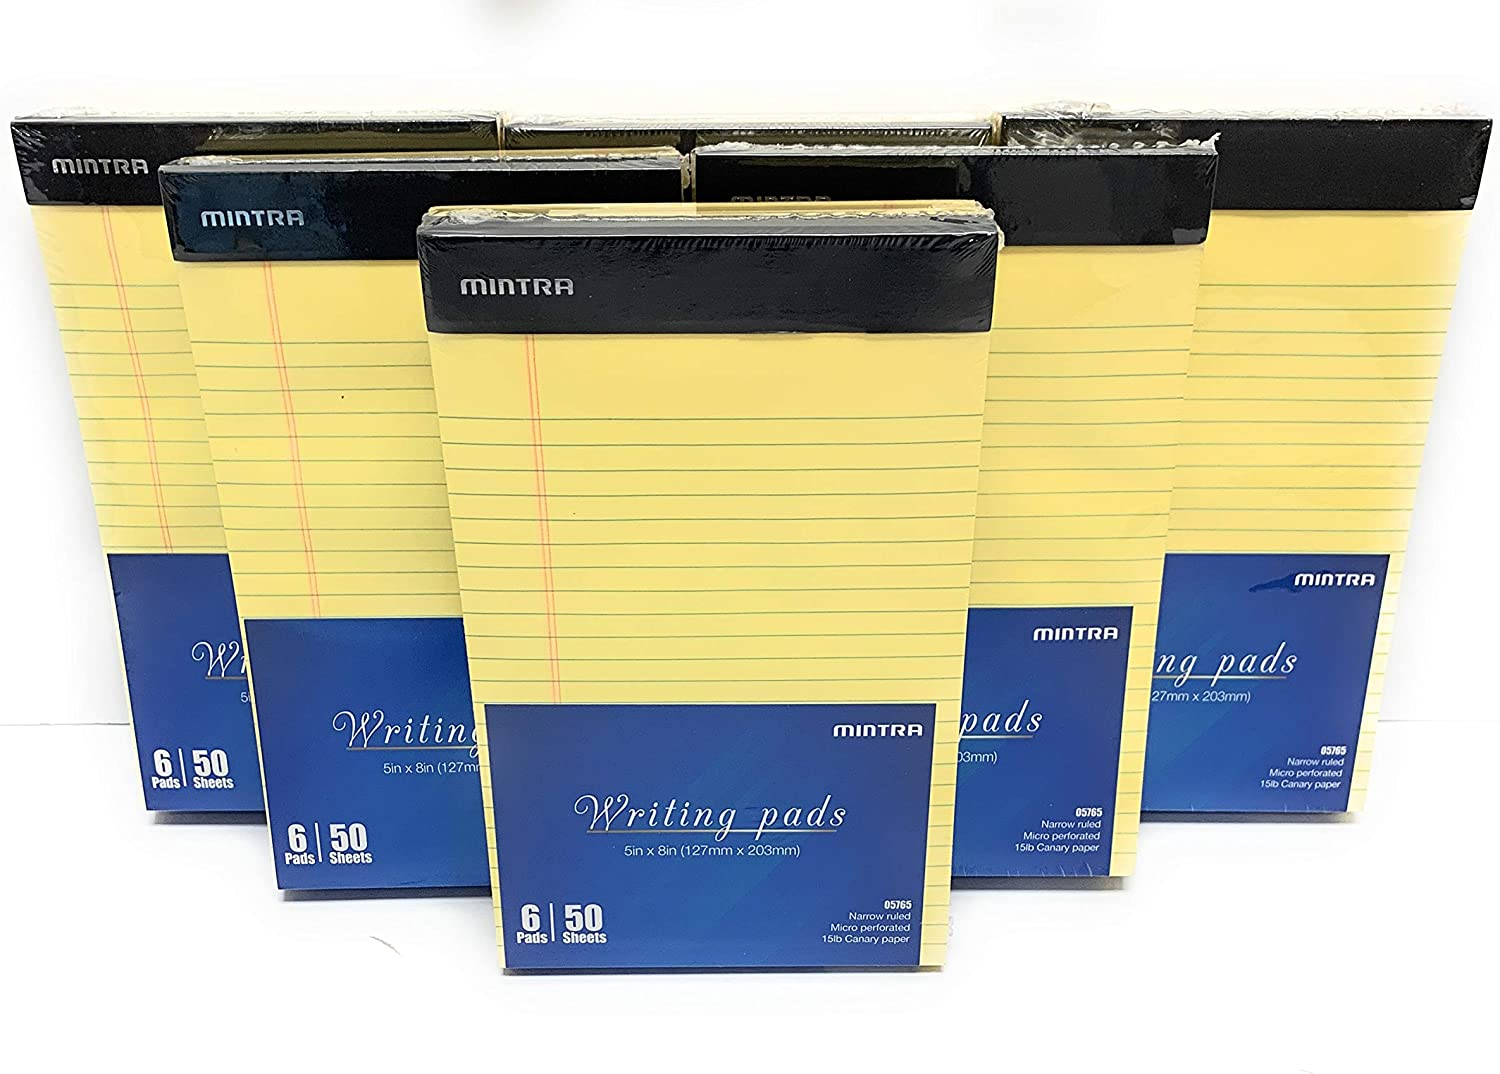 Mintra Office Legal Pads - 50 Sheets per Notepad - Micro perforated Writing Pad/Notebook Paper for School, College, Office, Work (xBasic, 5in x 8in, Narrow (Canary), 36pk (6-6pks))